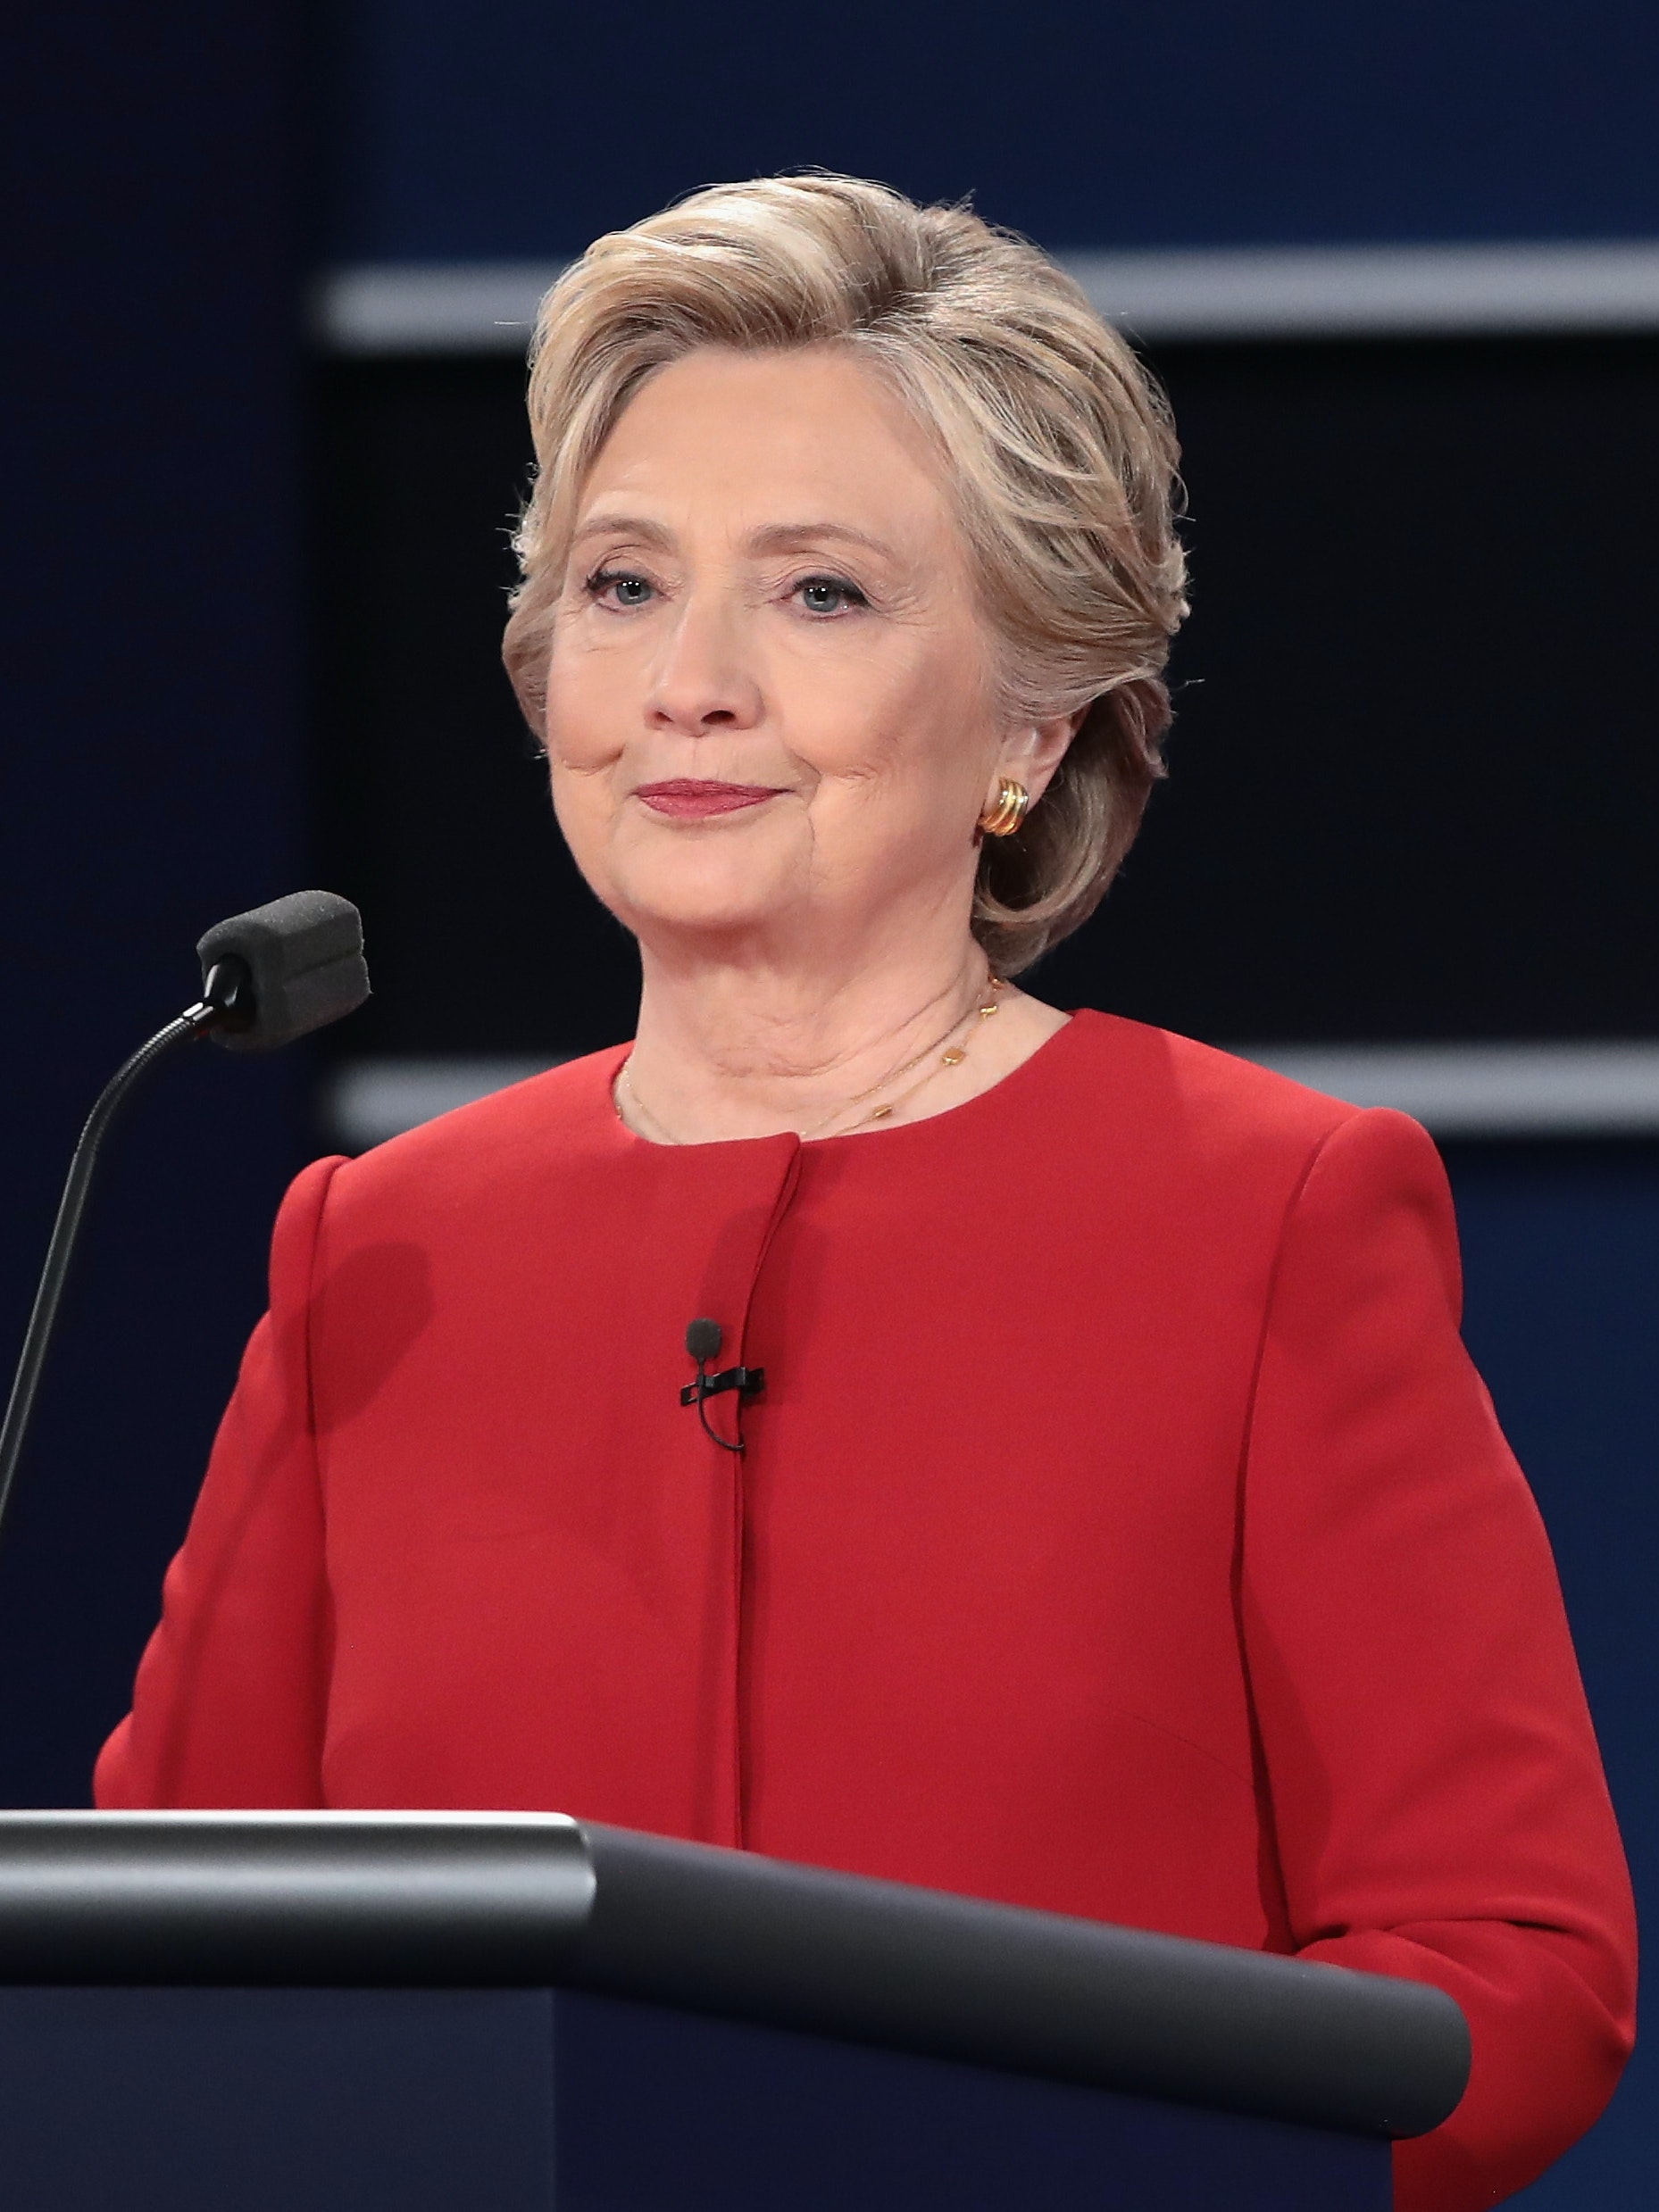 Democratic presidential nominee Hillary Clinton pauses during the Presidential Debate at Hofstra University on September 26, 2016 in Hempstead, New York. The first of four debates for the 2016 Election, three Presidential and one Vice Presidential, is moderated by NBC's Lester Holt.